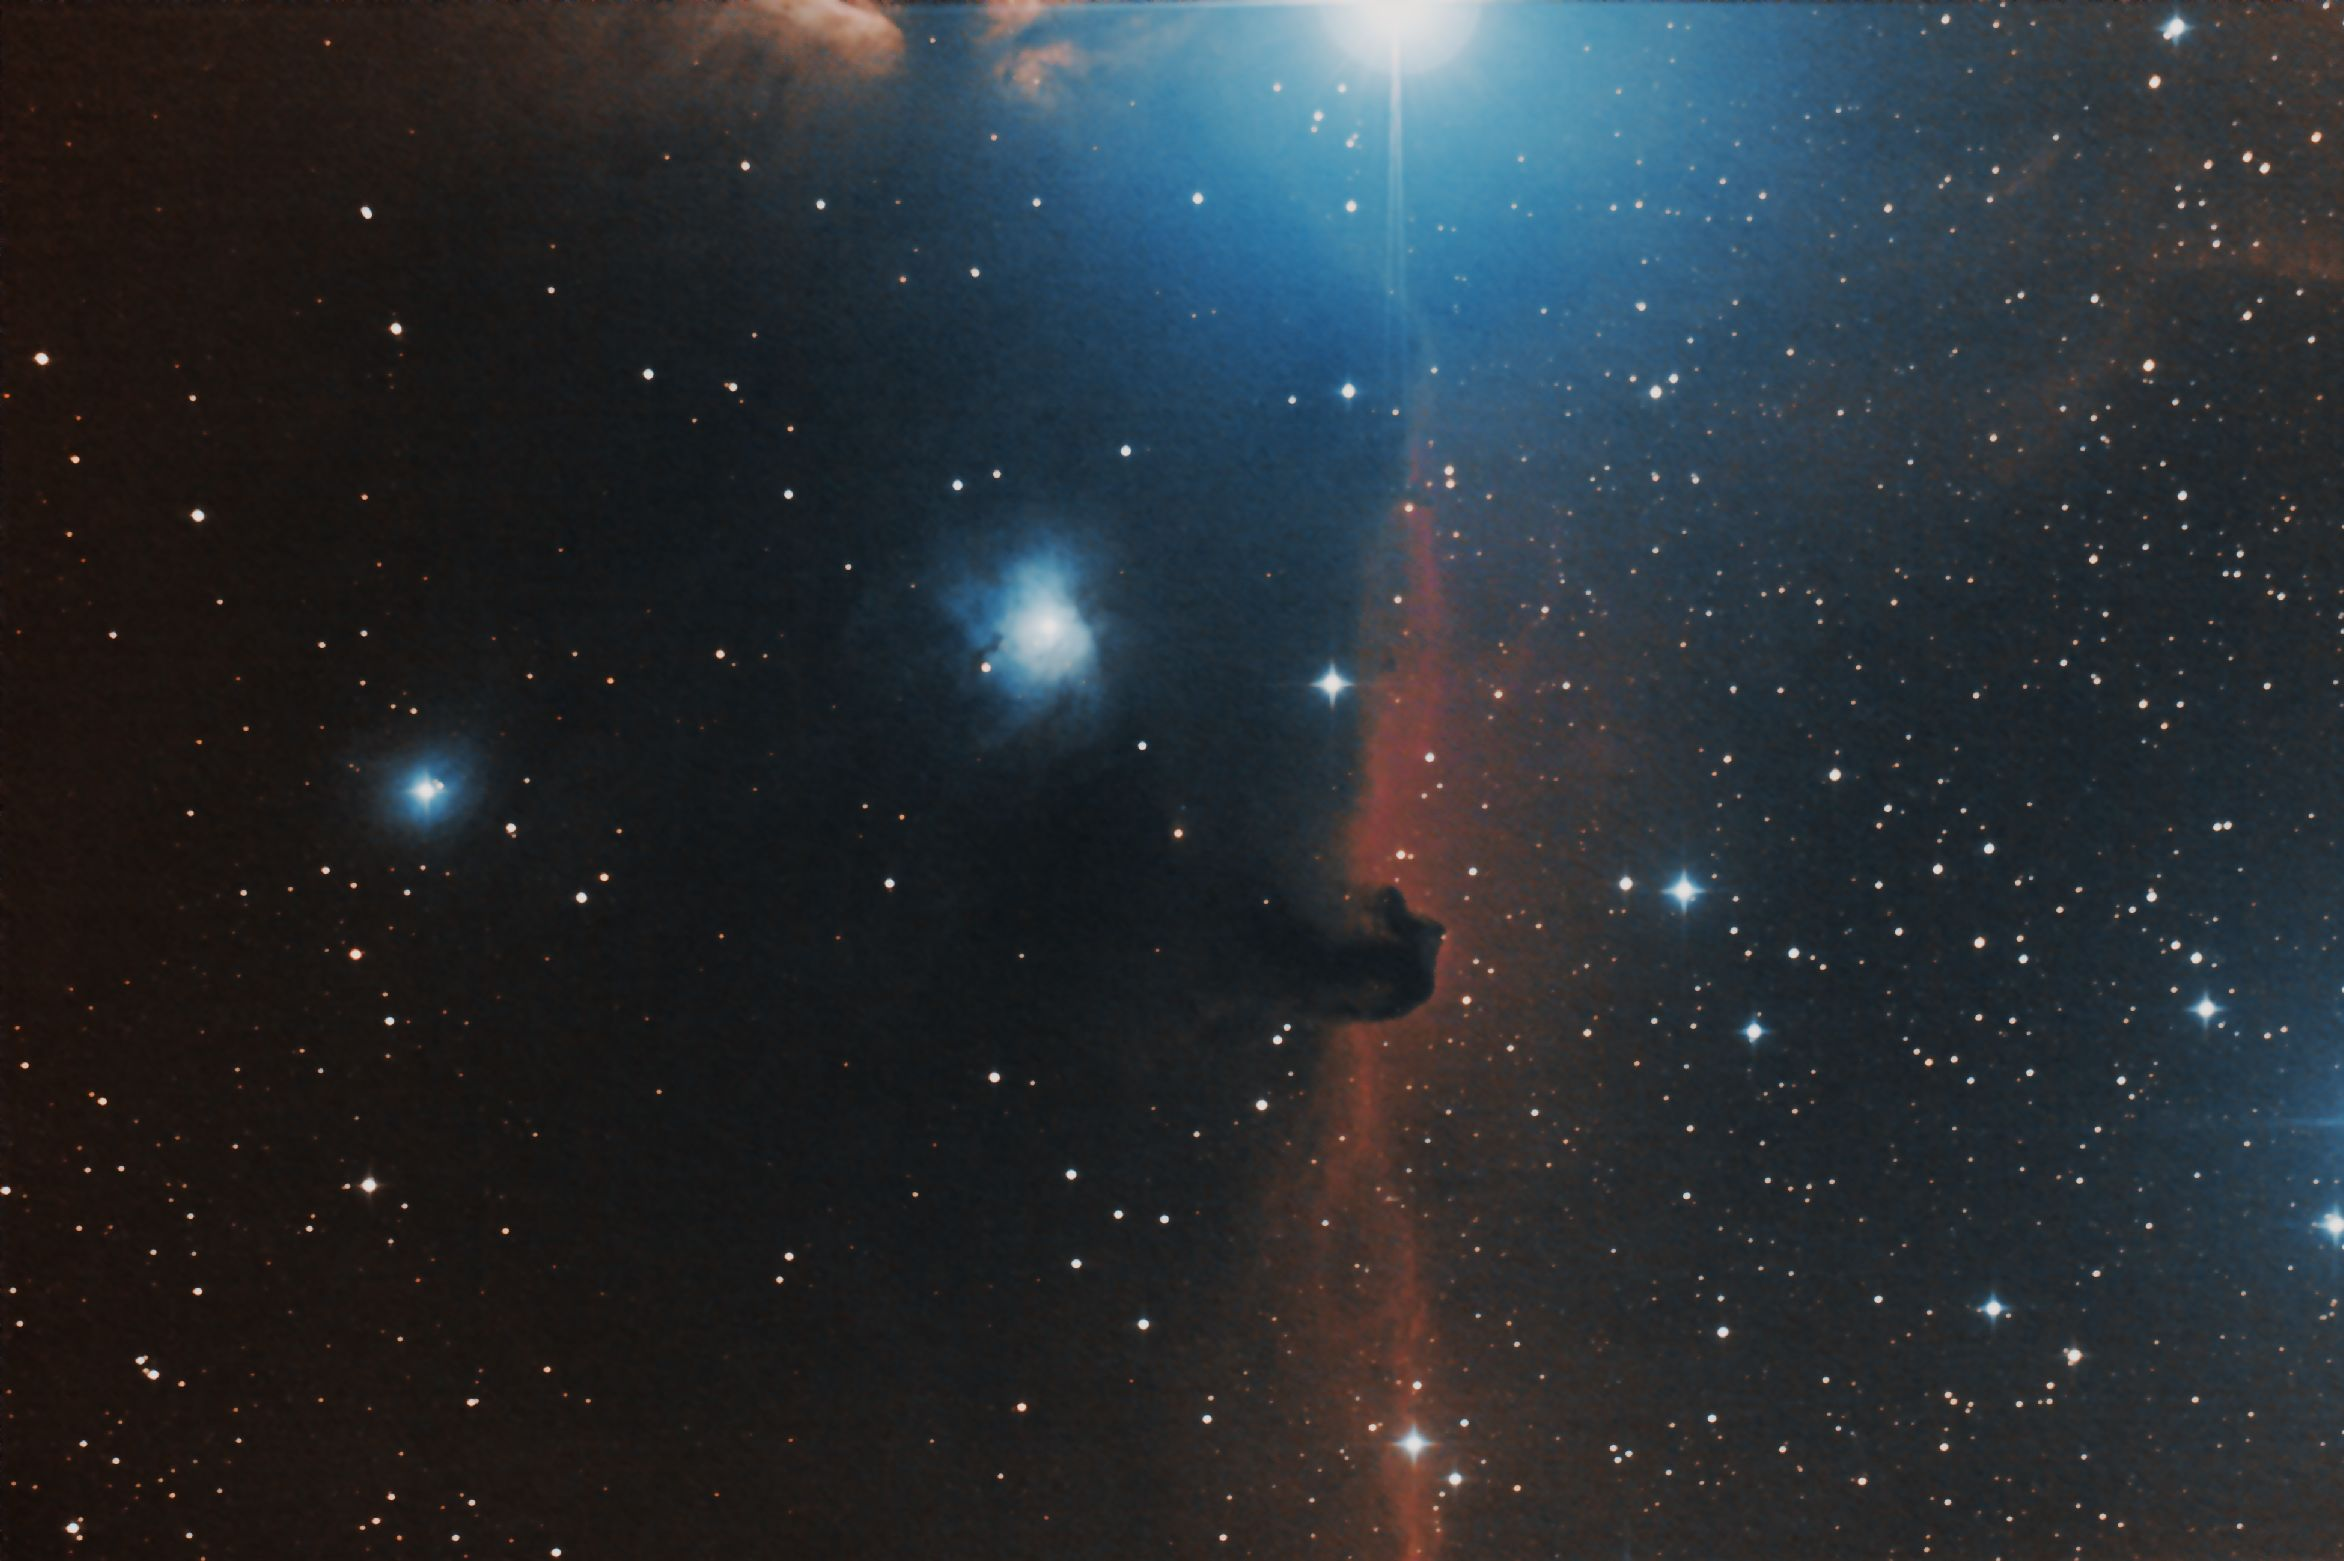 IC434, Paarde kop nevel,Orion